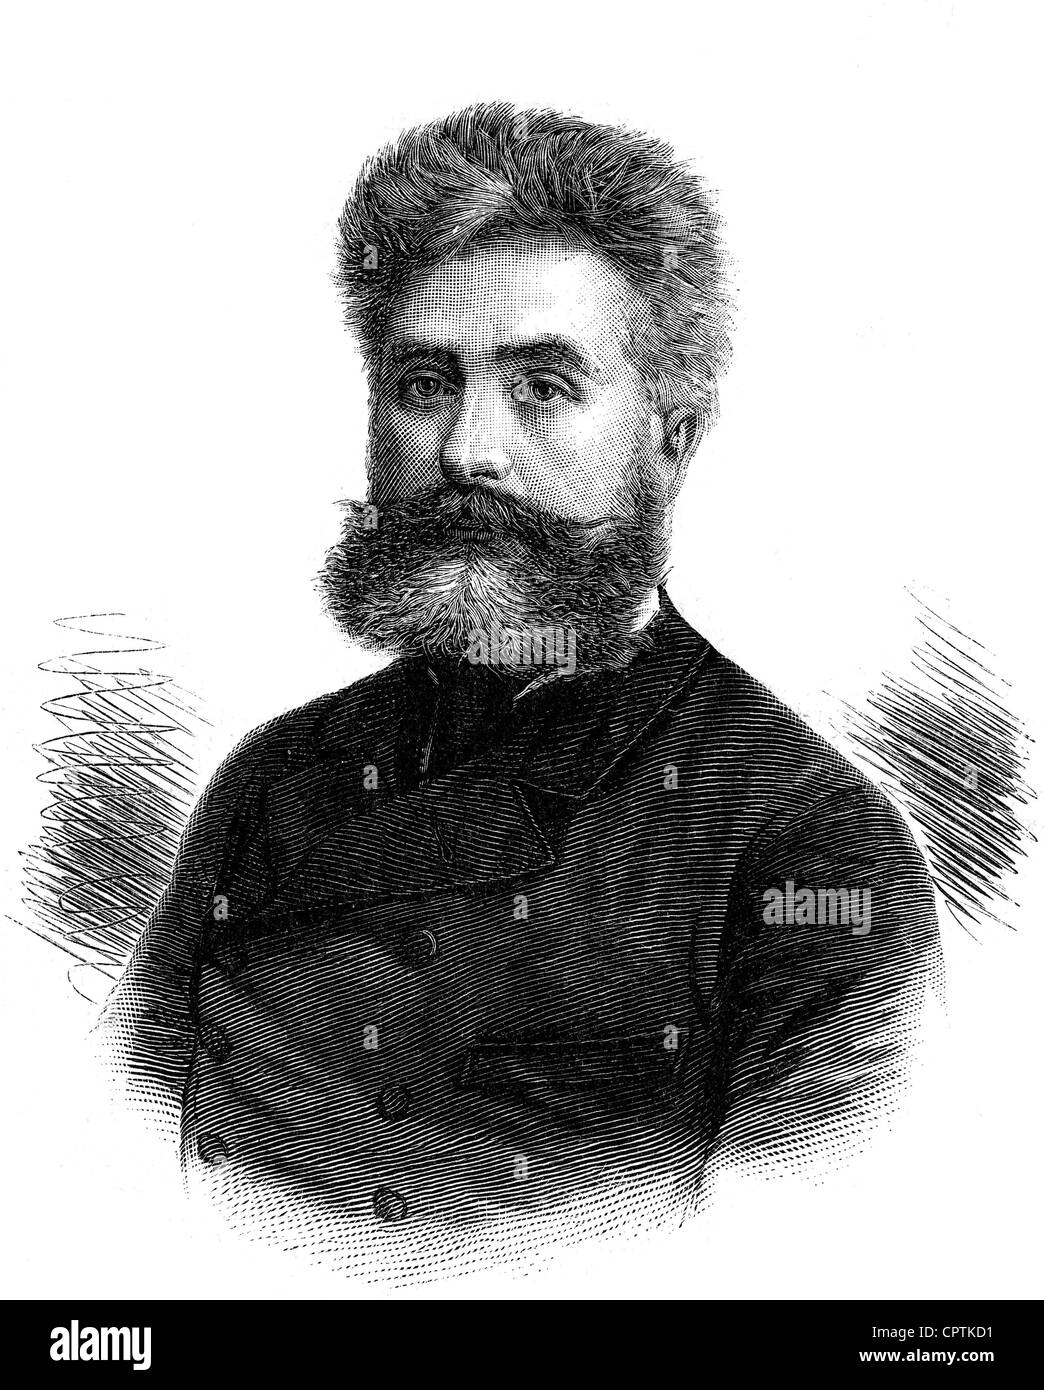 Nordau, Max, 29.7.1849 - 23.1.1923, Hungarian author / writer, medical doctor, portrait, wood engraving, 19th century, Stock Photo